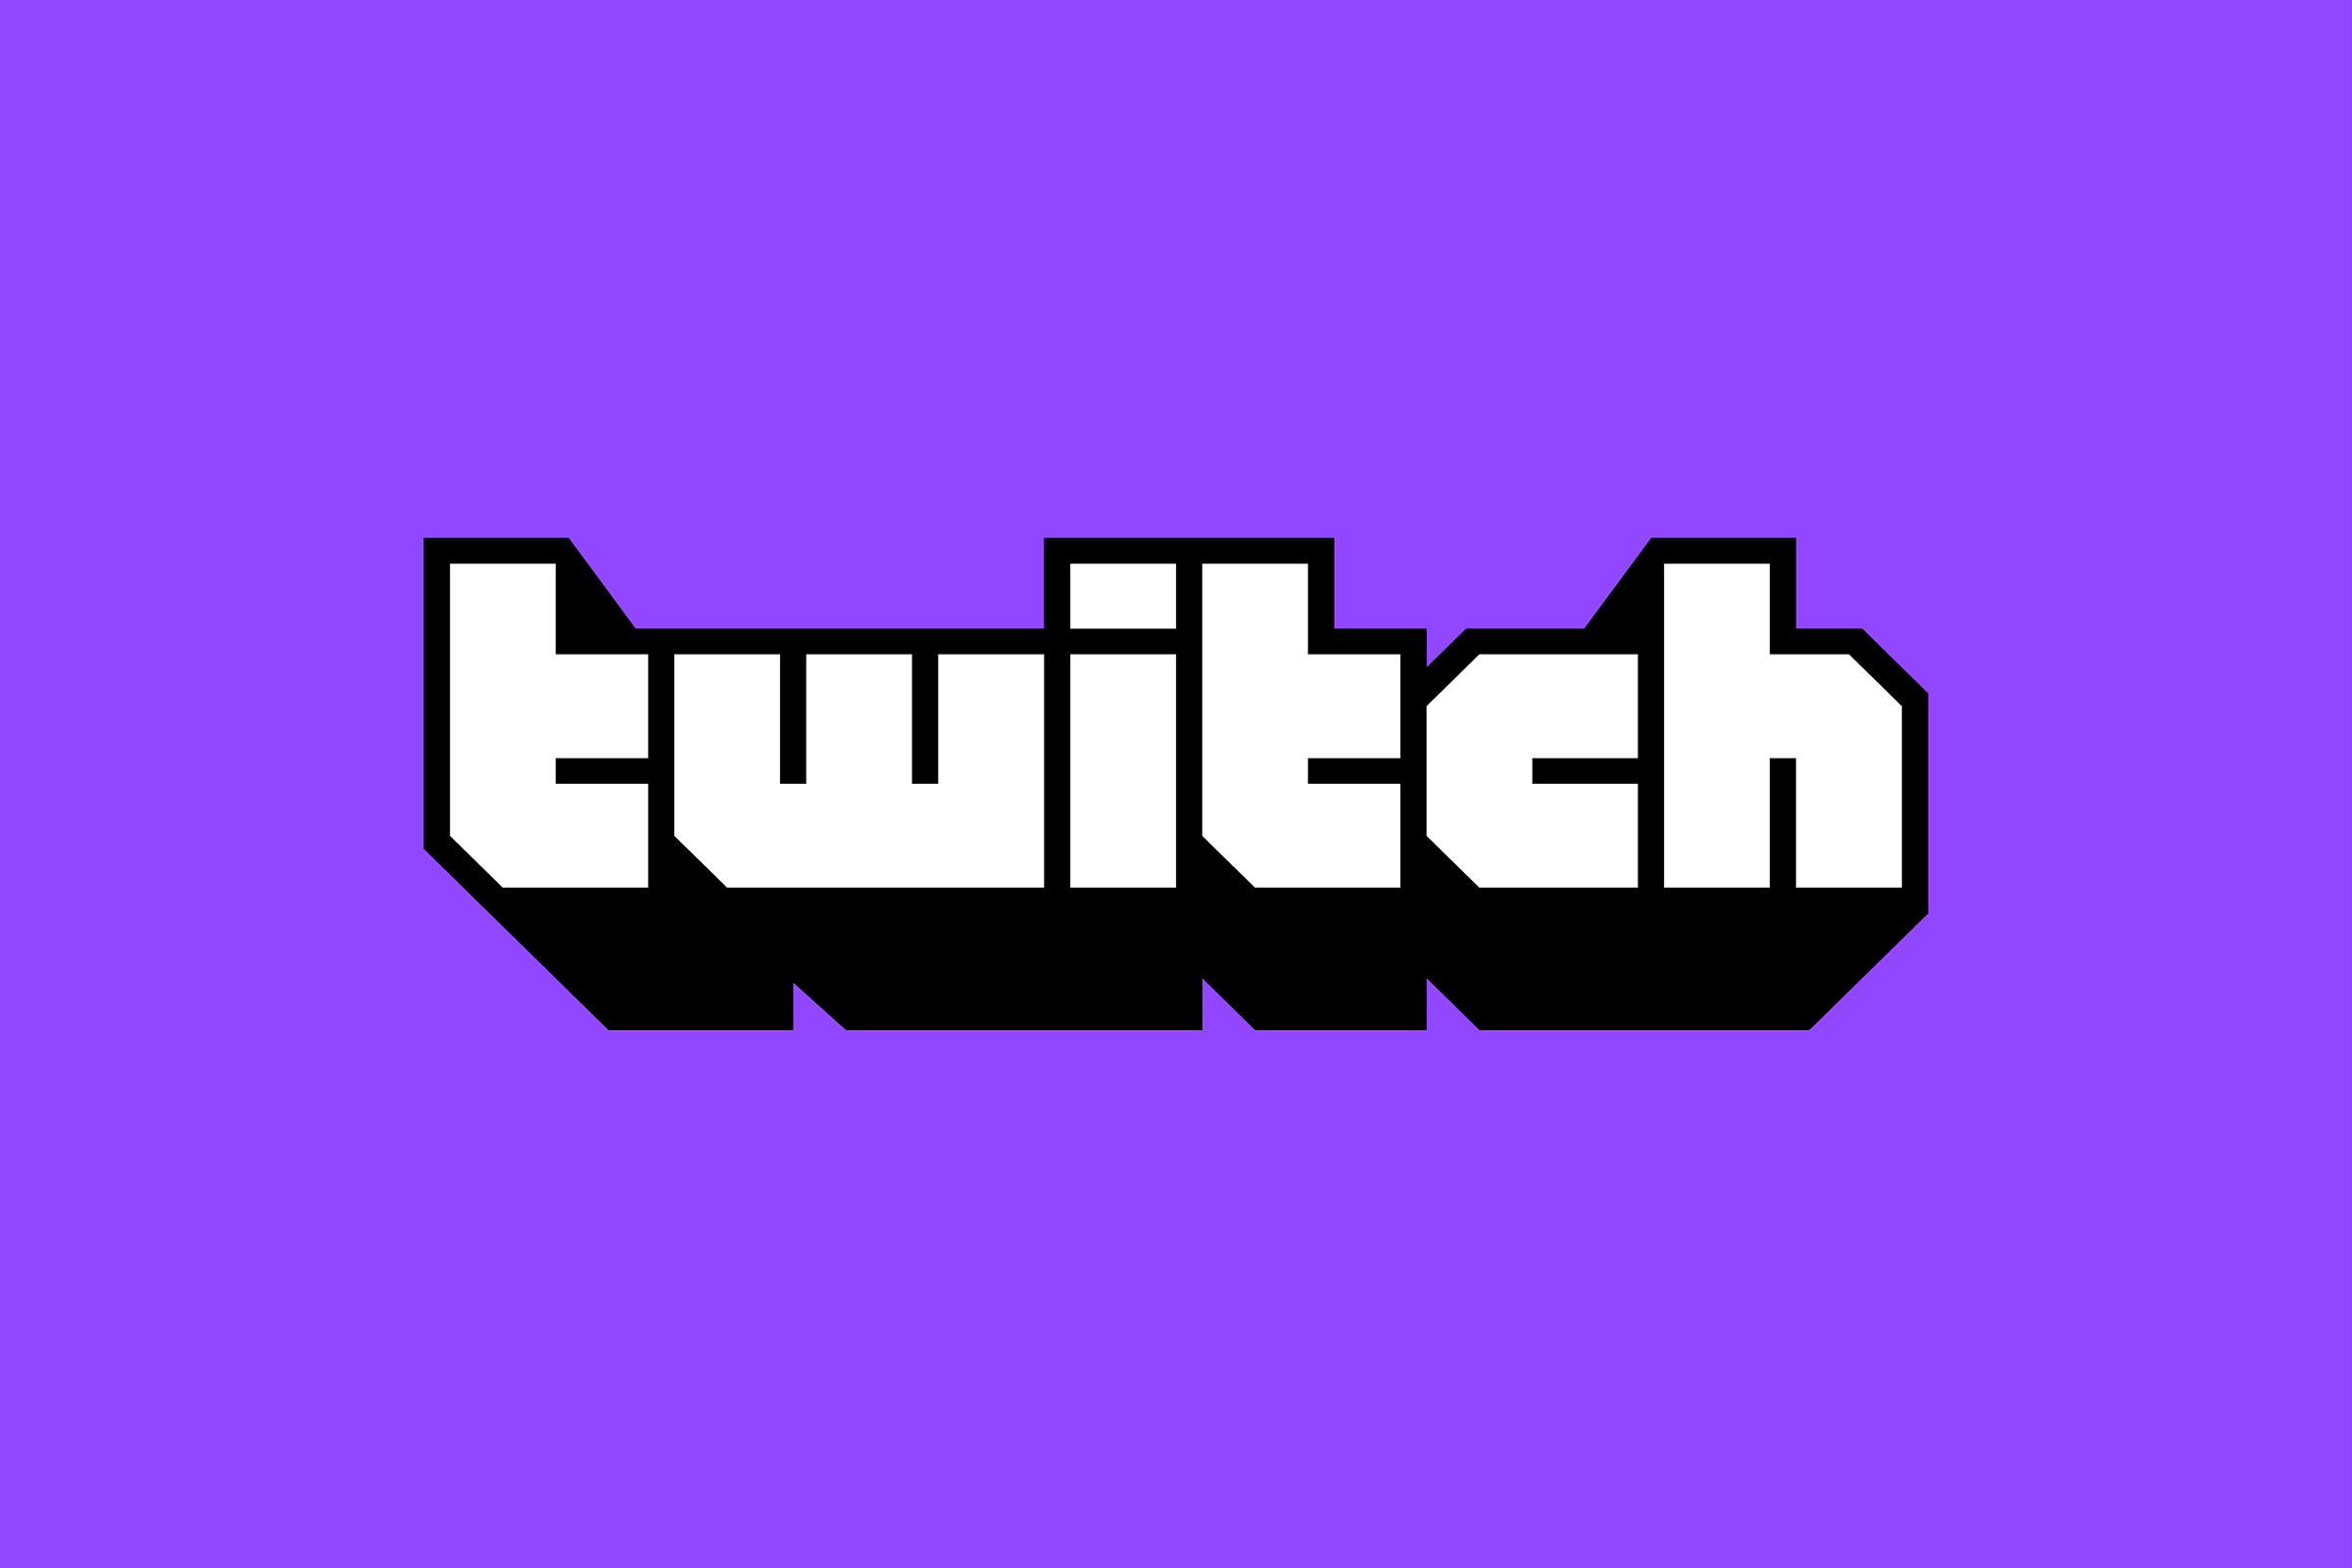 How can you increase followers on Twitch?